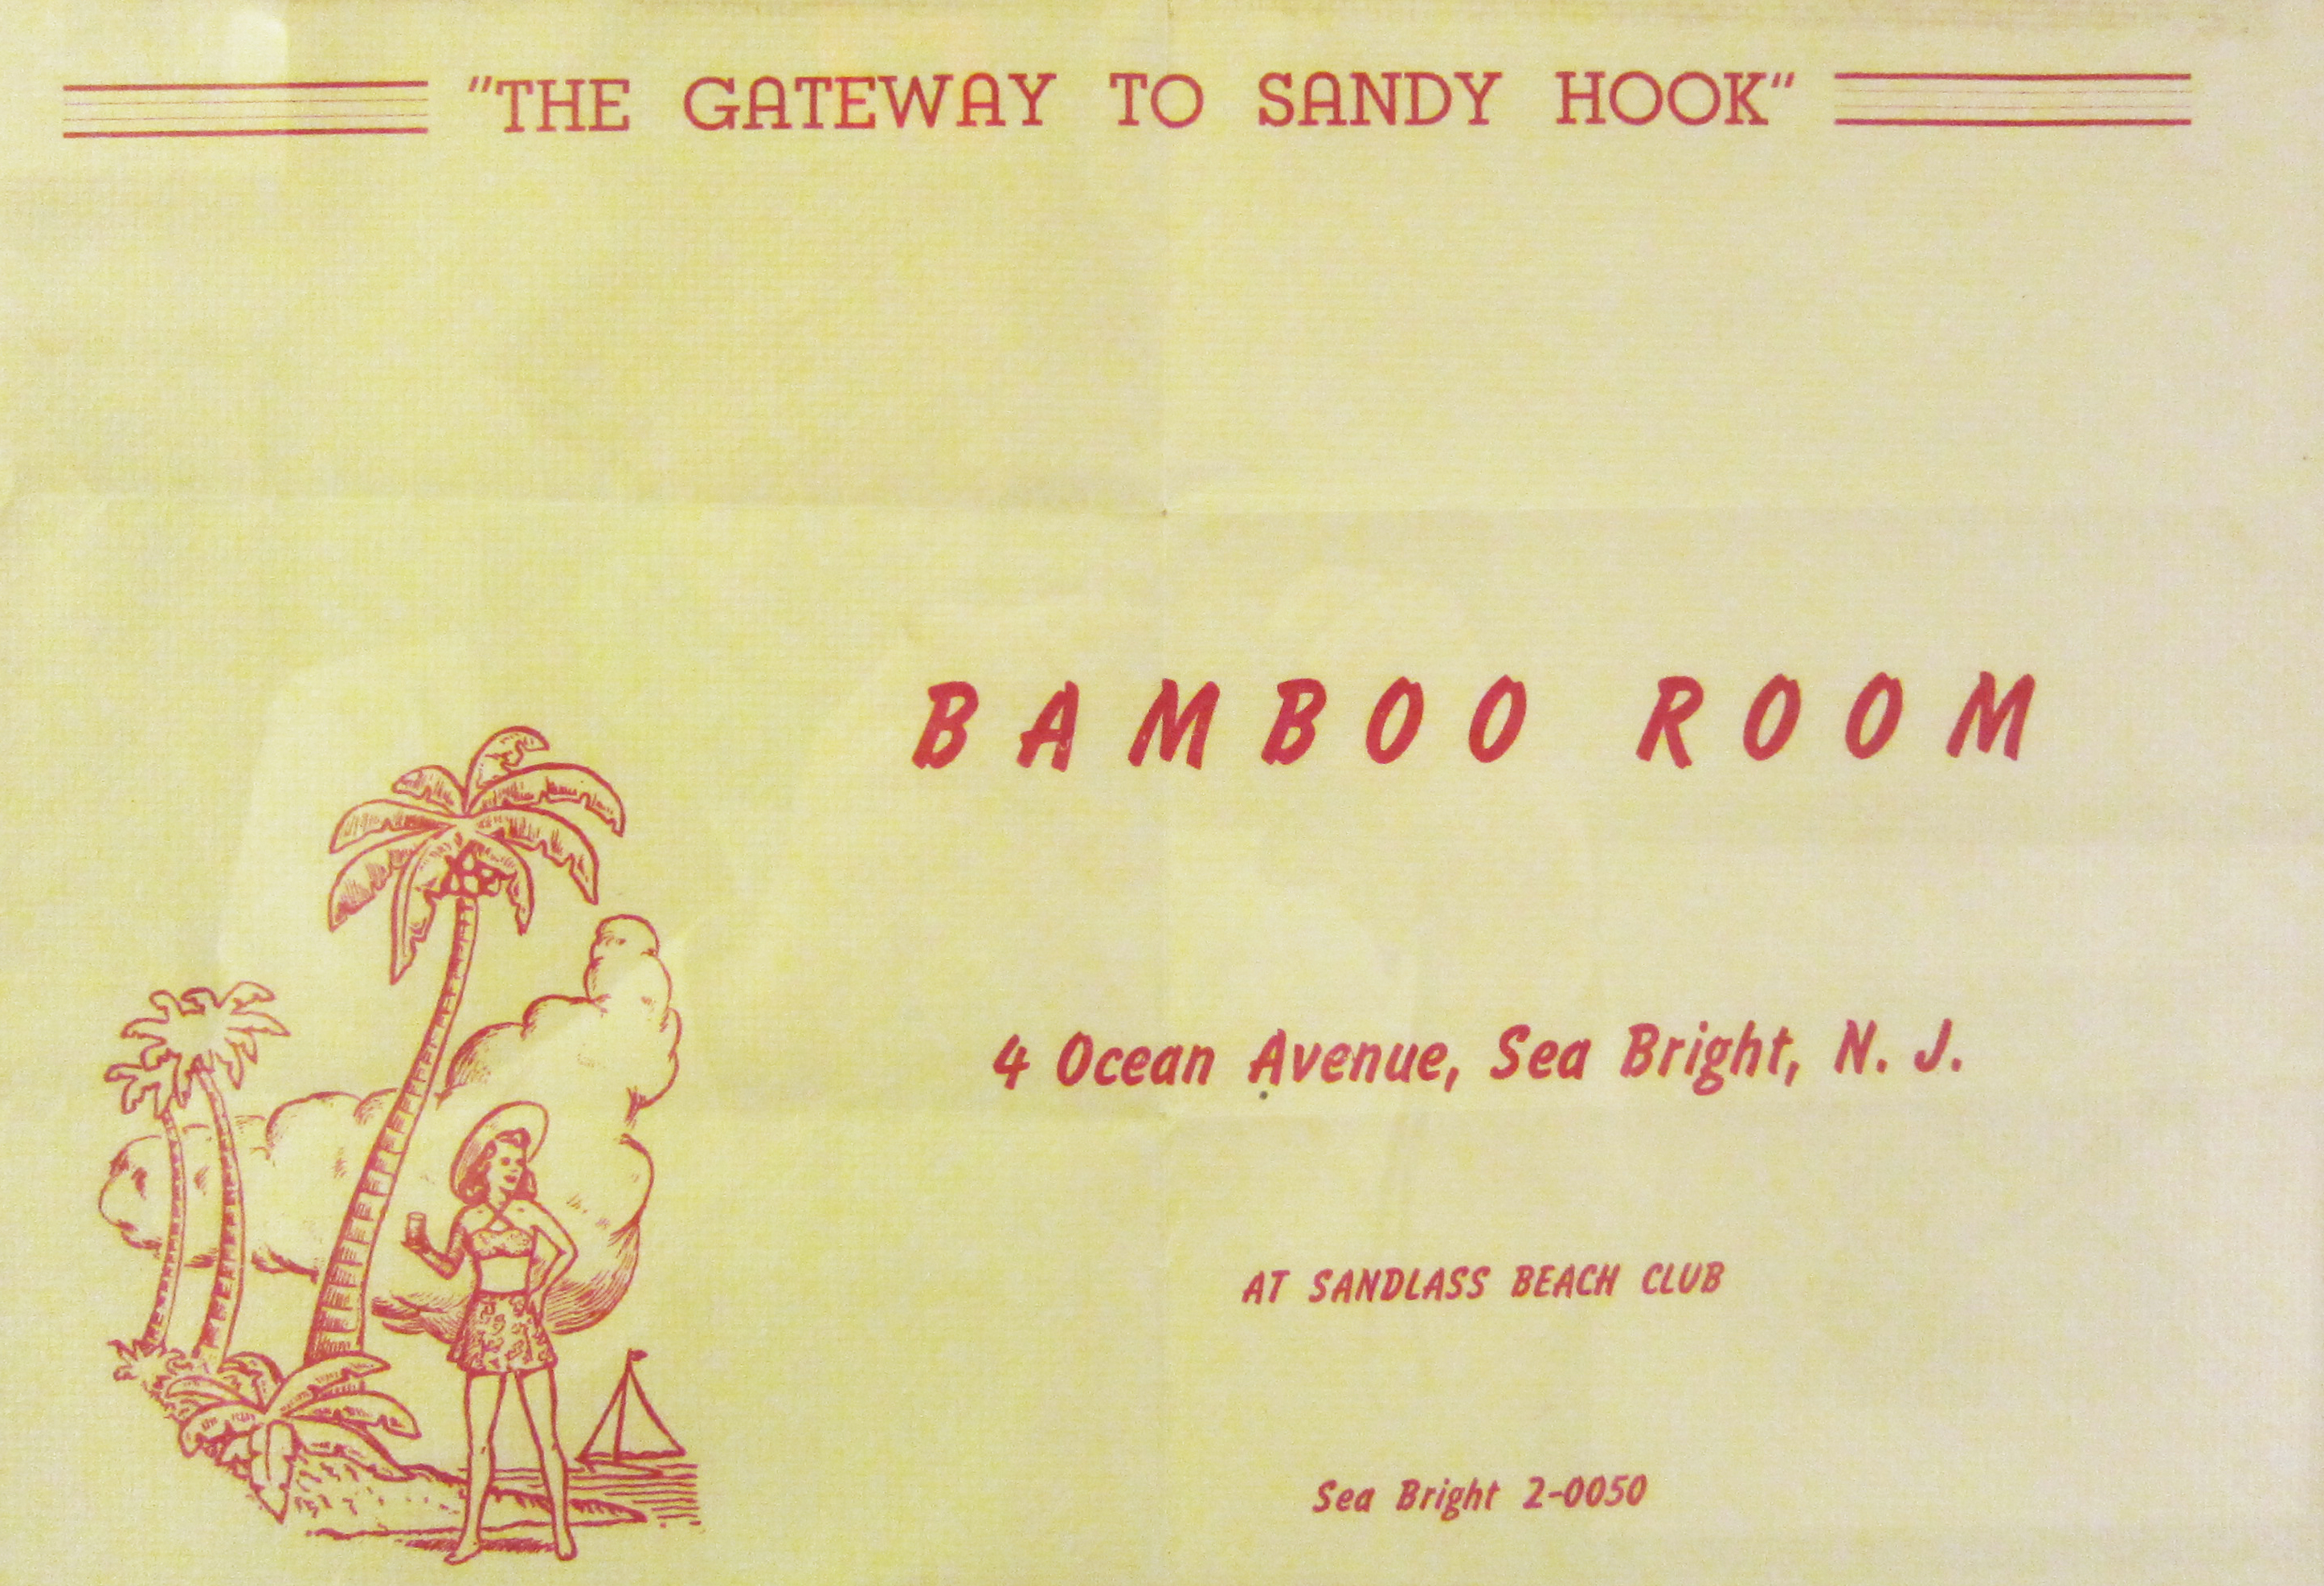 Bamboo Room, Sea Bright, New Jersey